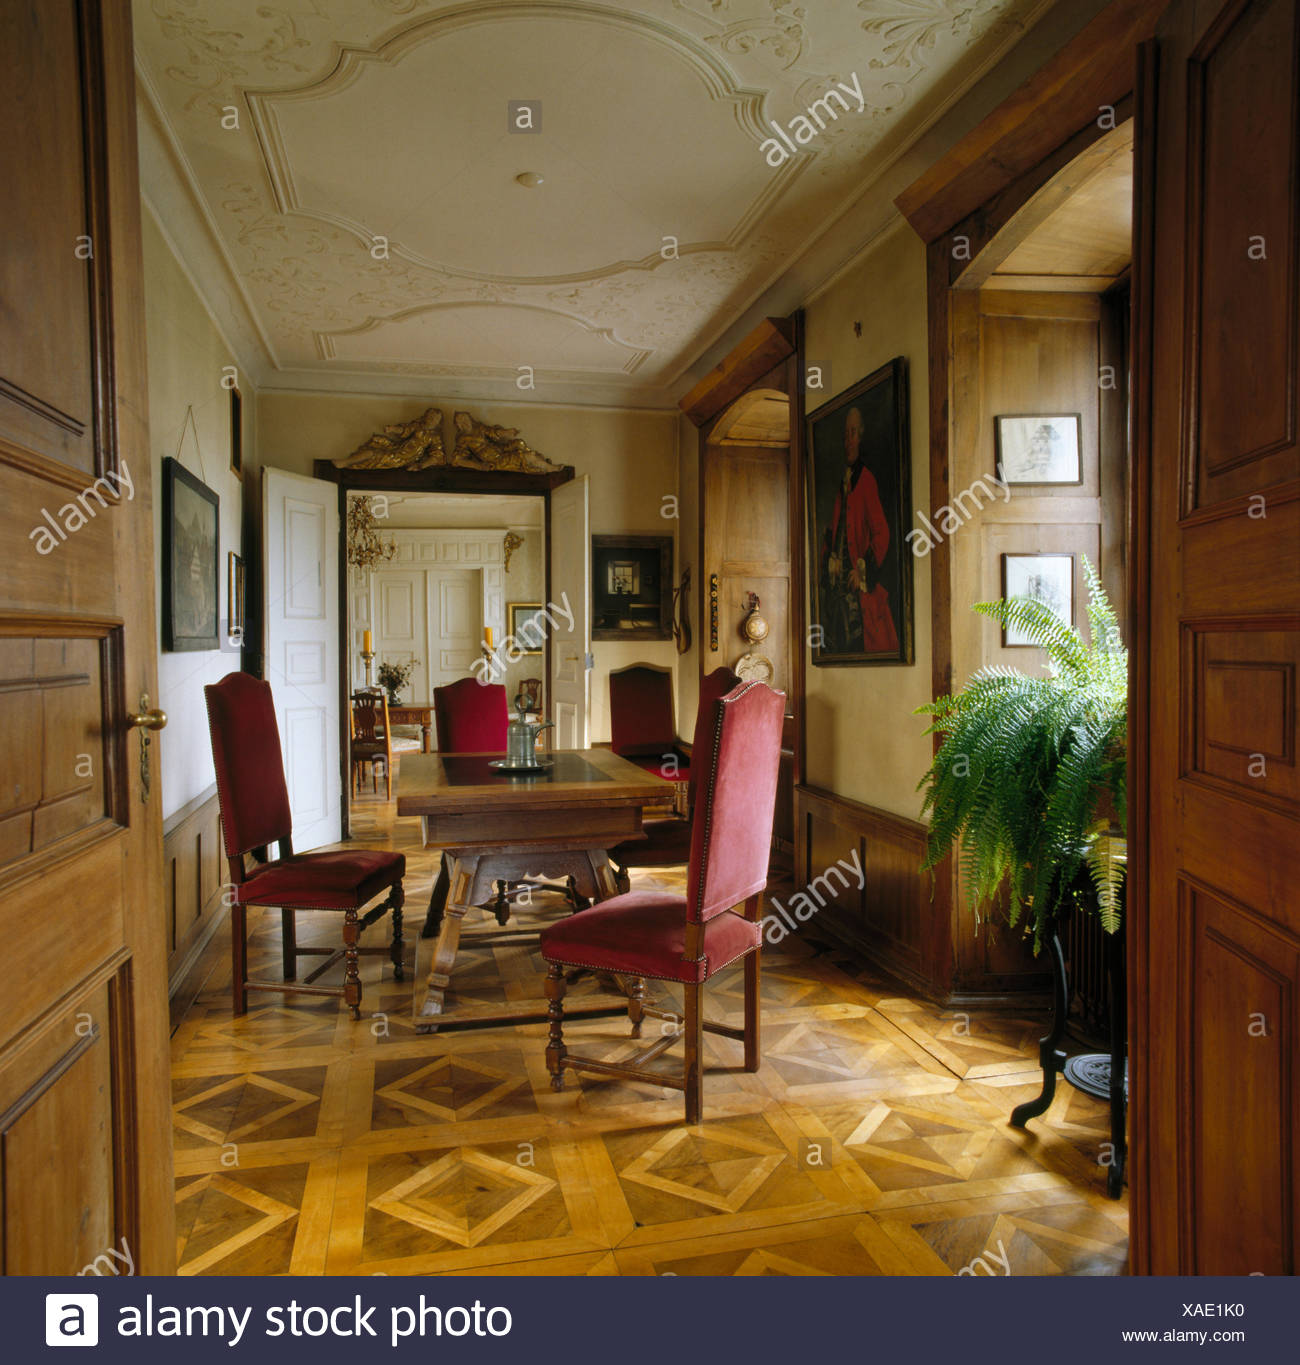 Parquet flooring and antique dining table and chairs in period hall dining room - Stock Image